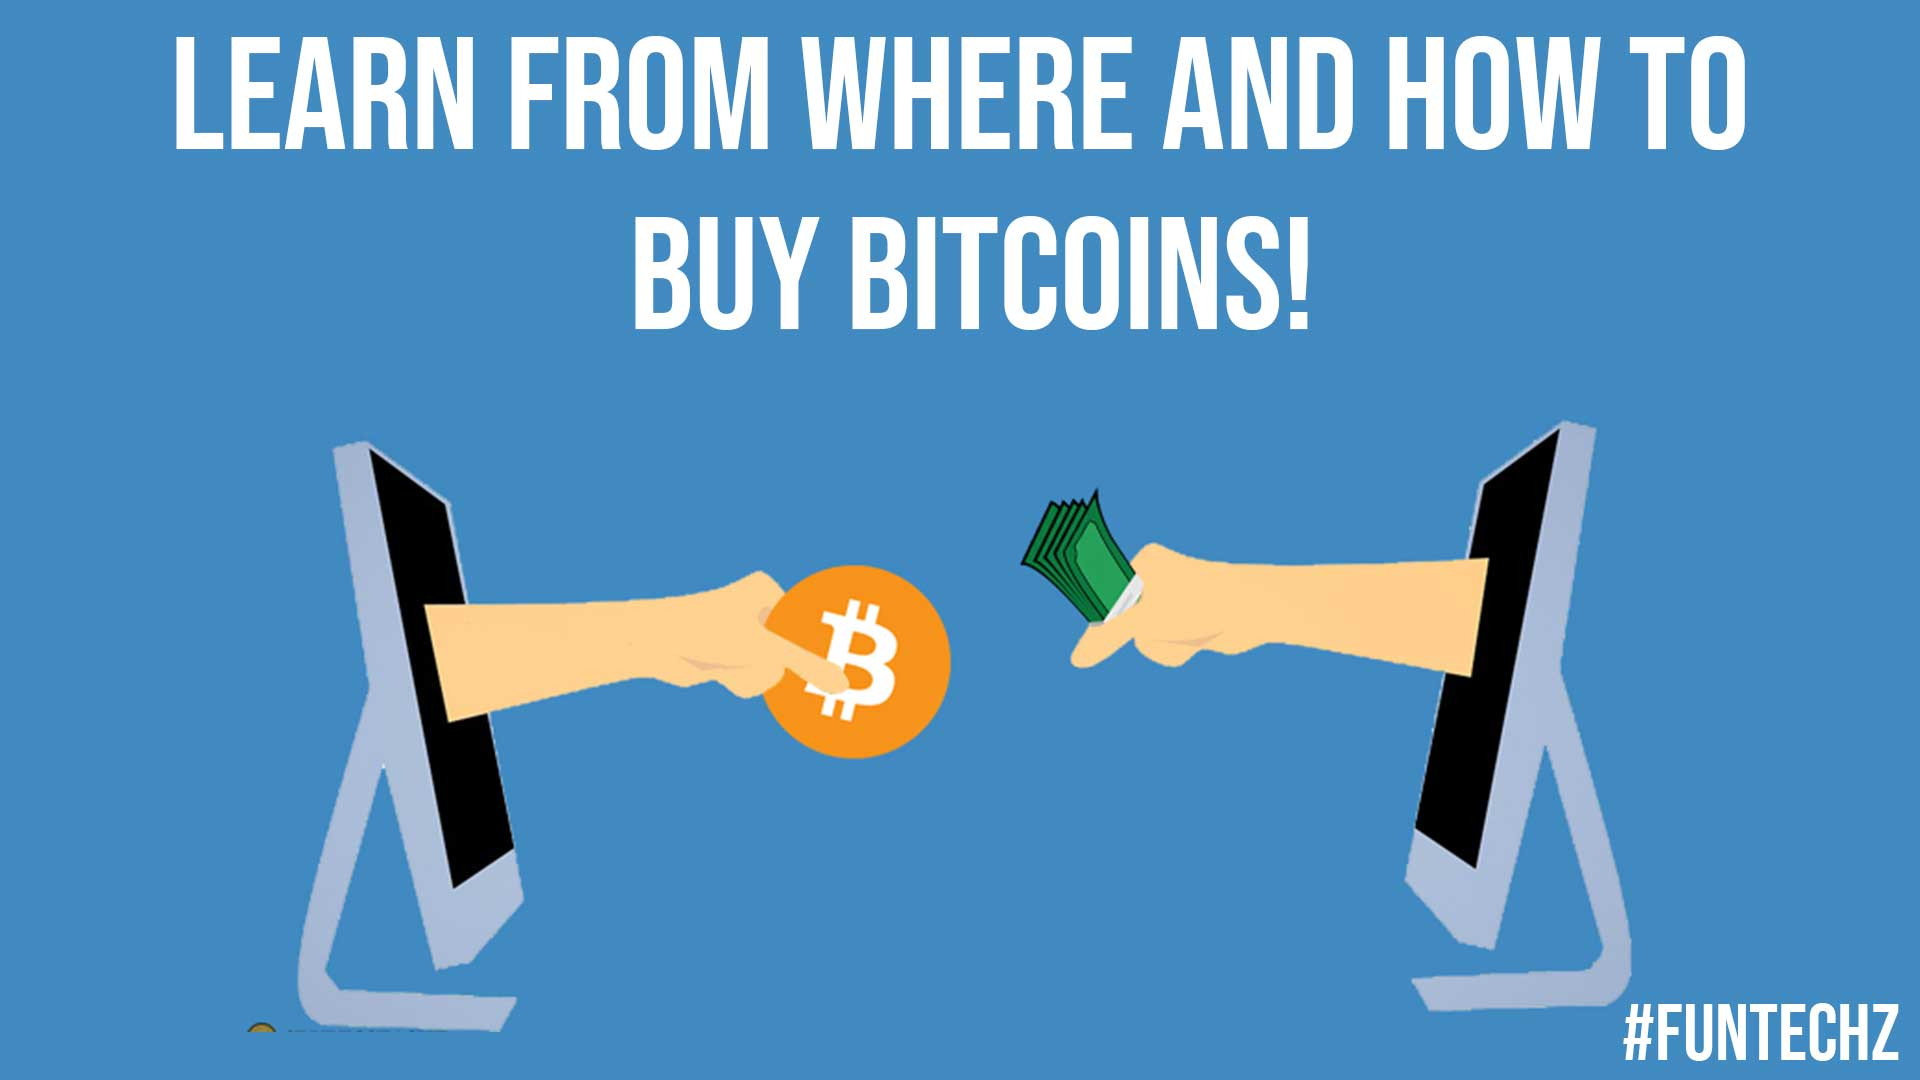 Learn from Where and How to Buy Bitcoins